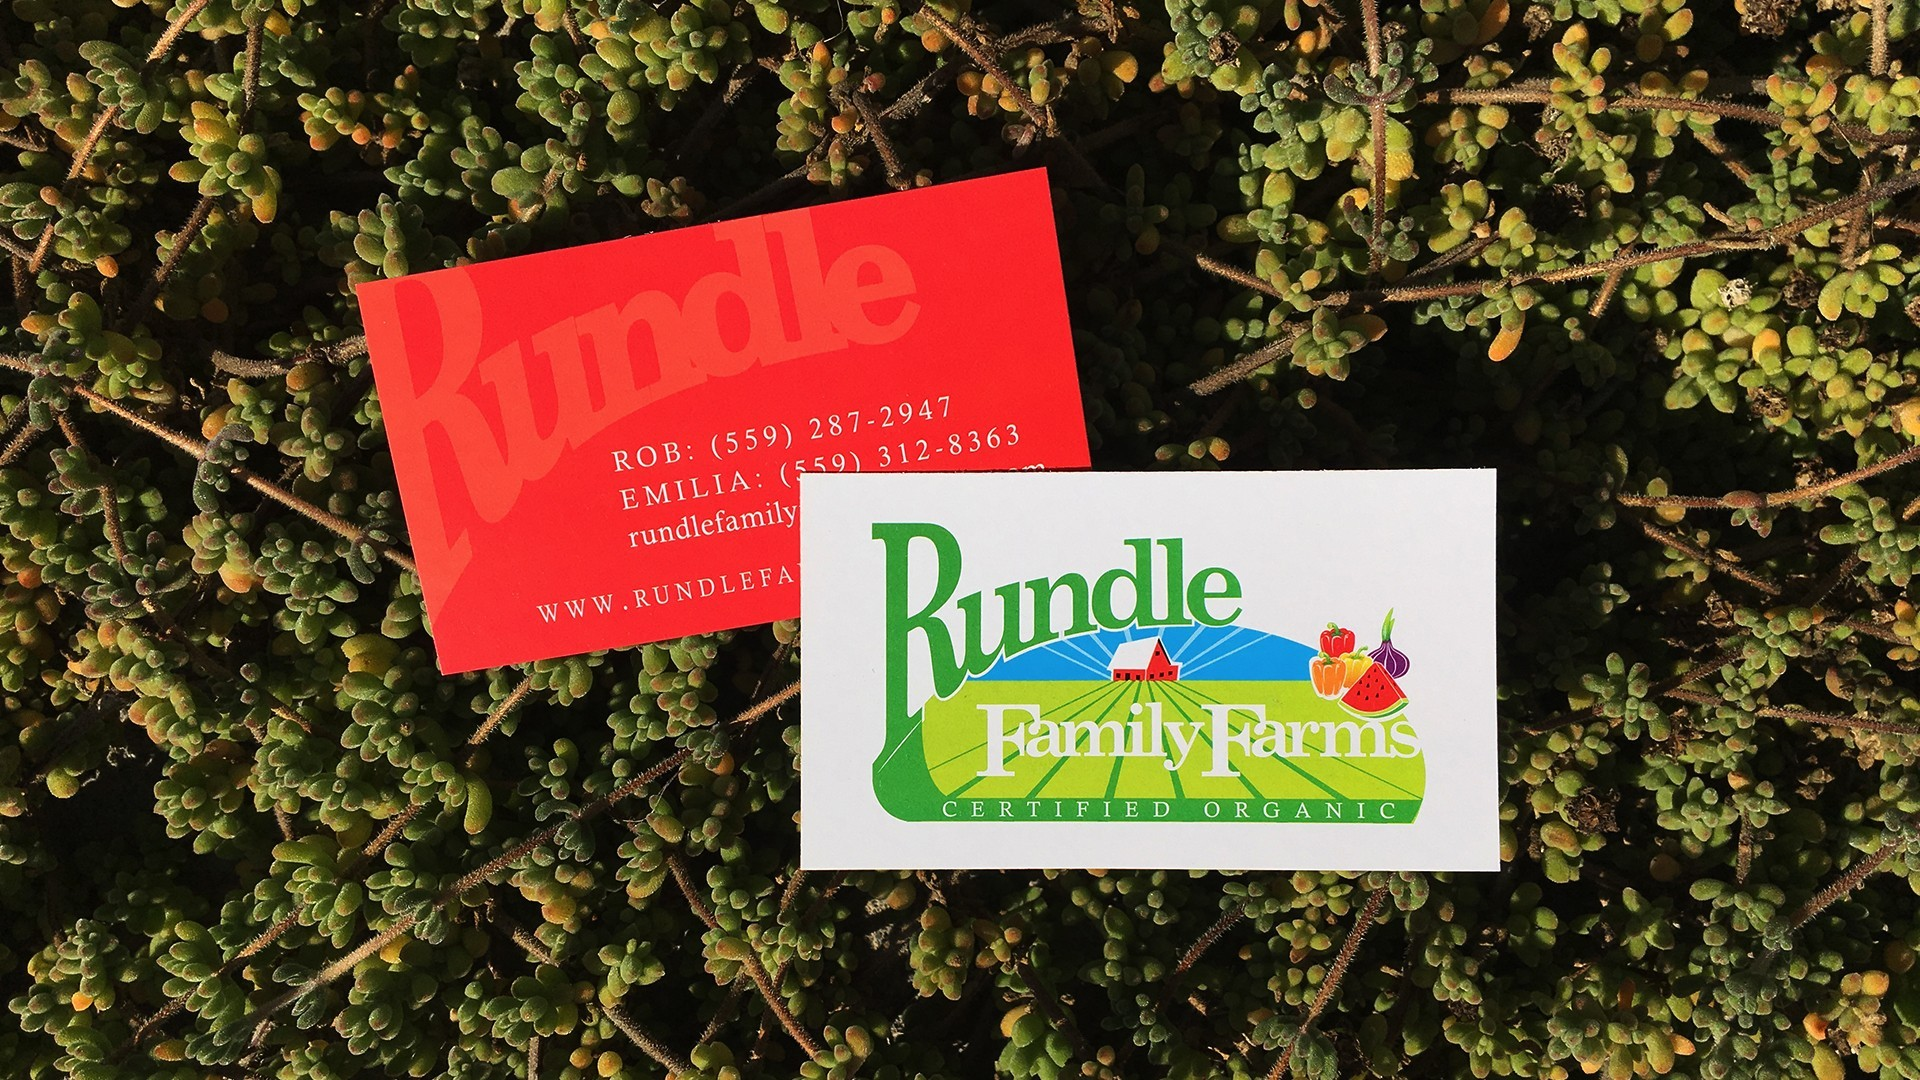 Rundle Family Farms